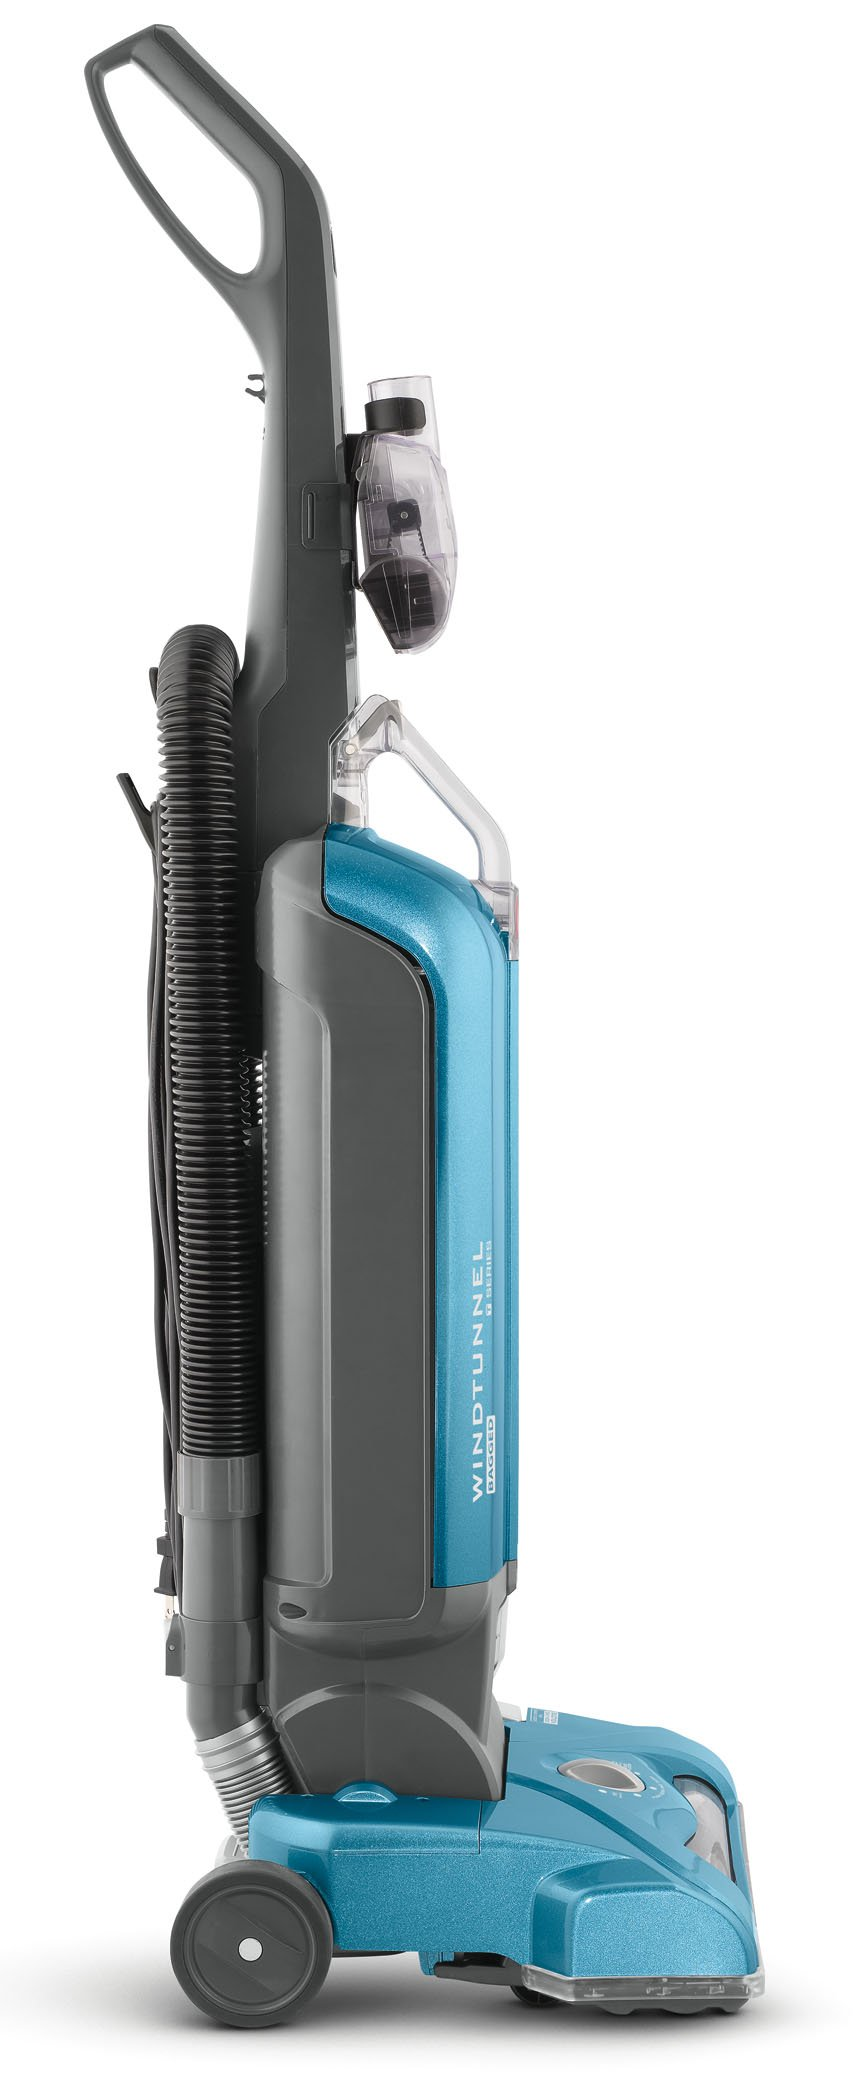 Hoover Vacuum Cleaner T-Series WindTunnel Corded Bagged Upright Vacuum UH30300 by Hoover (Image #3)